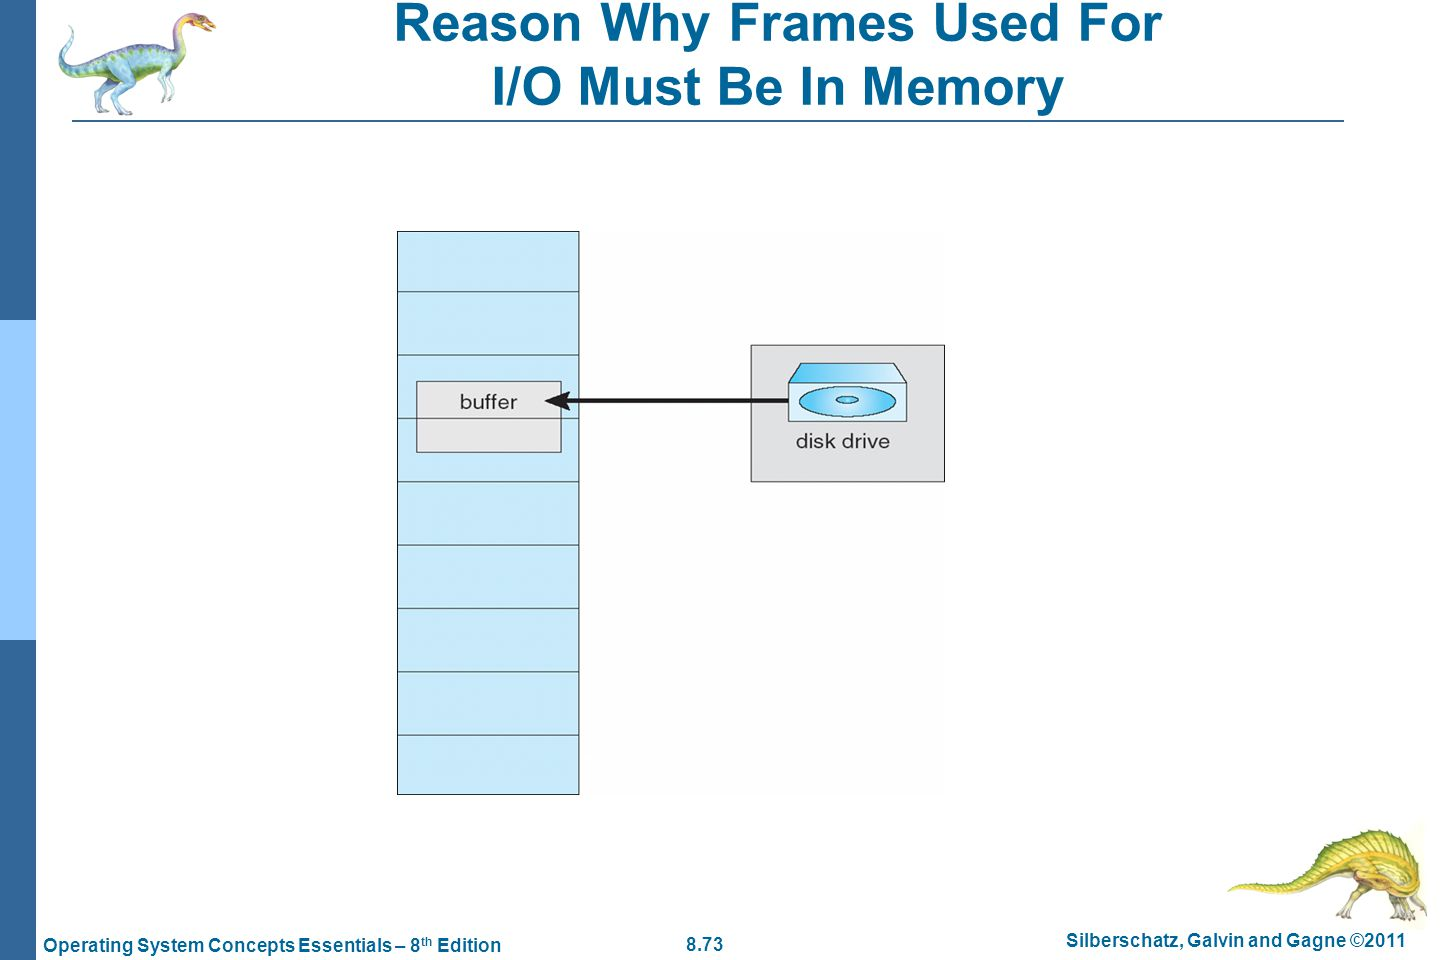 8.73 Silberschatz, Galvin and Gagne ©2011 Operating System Concepts Essentials – 8 th Edition Reason Why Frames Used For I/O Must Be In Memory